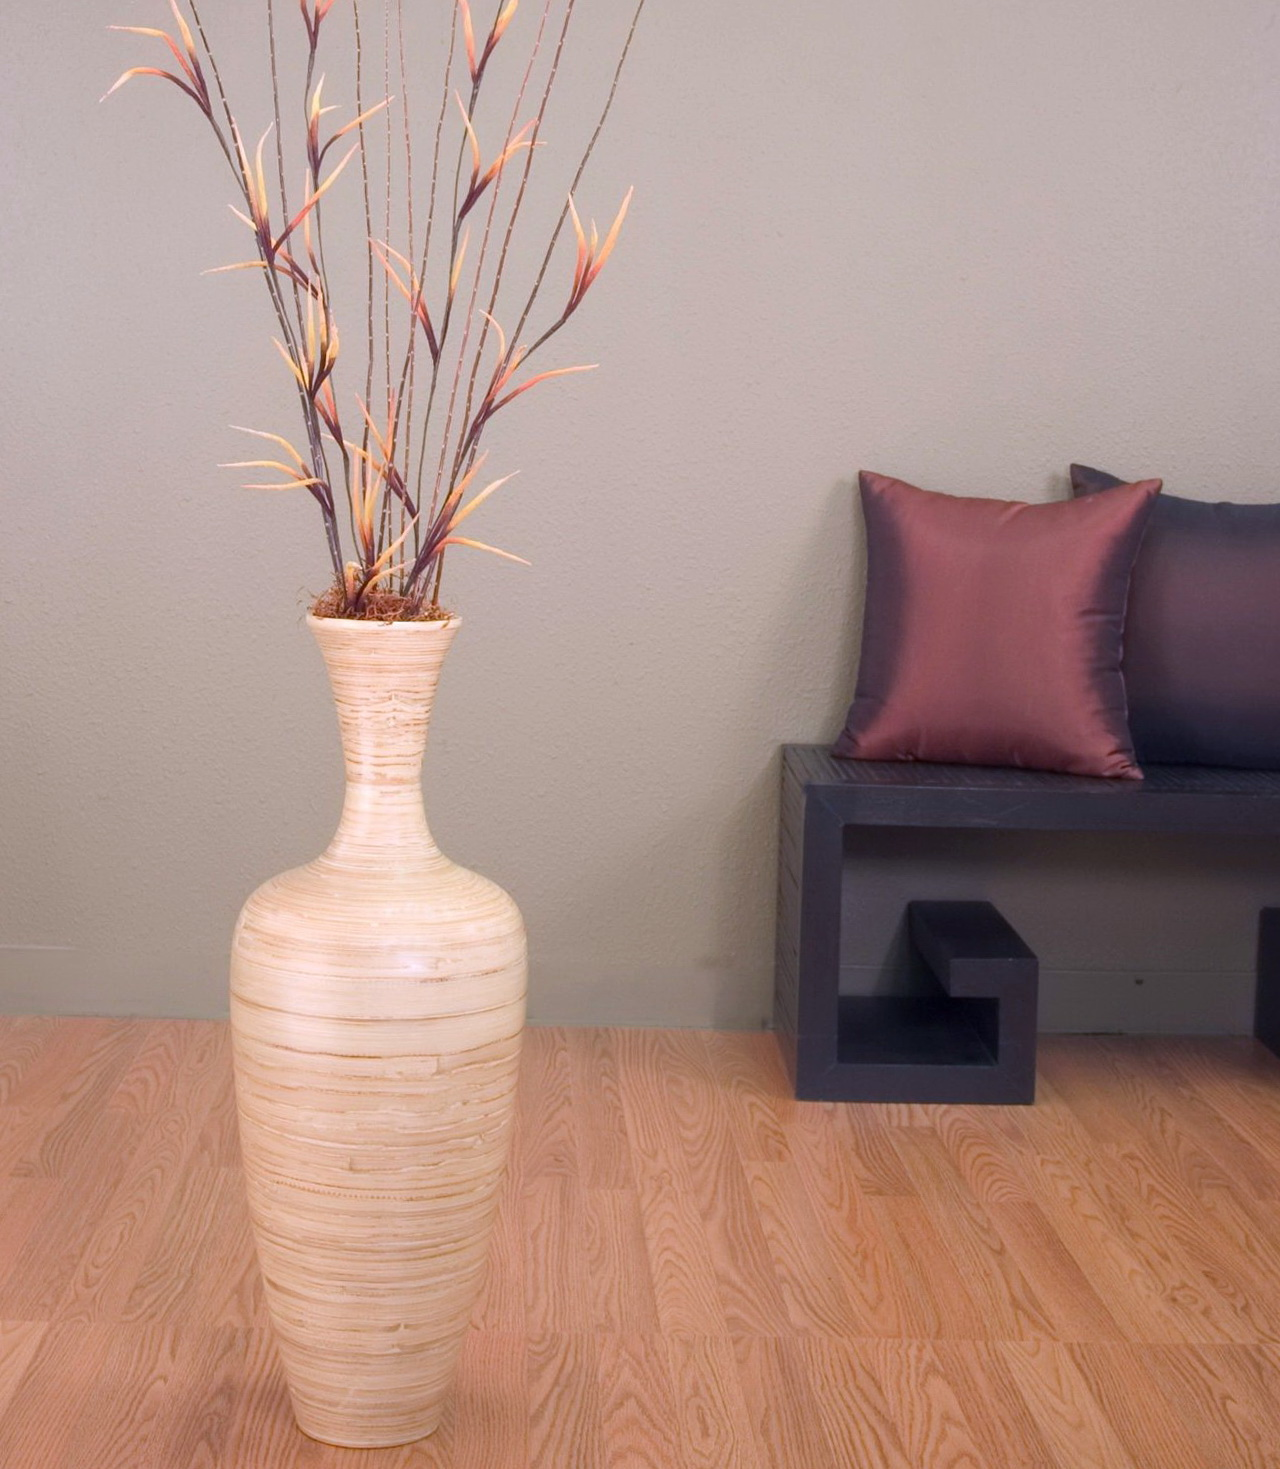 Tall floor vase arrangements home design ideas for Floor vase ideas